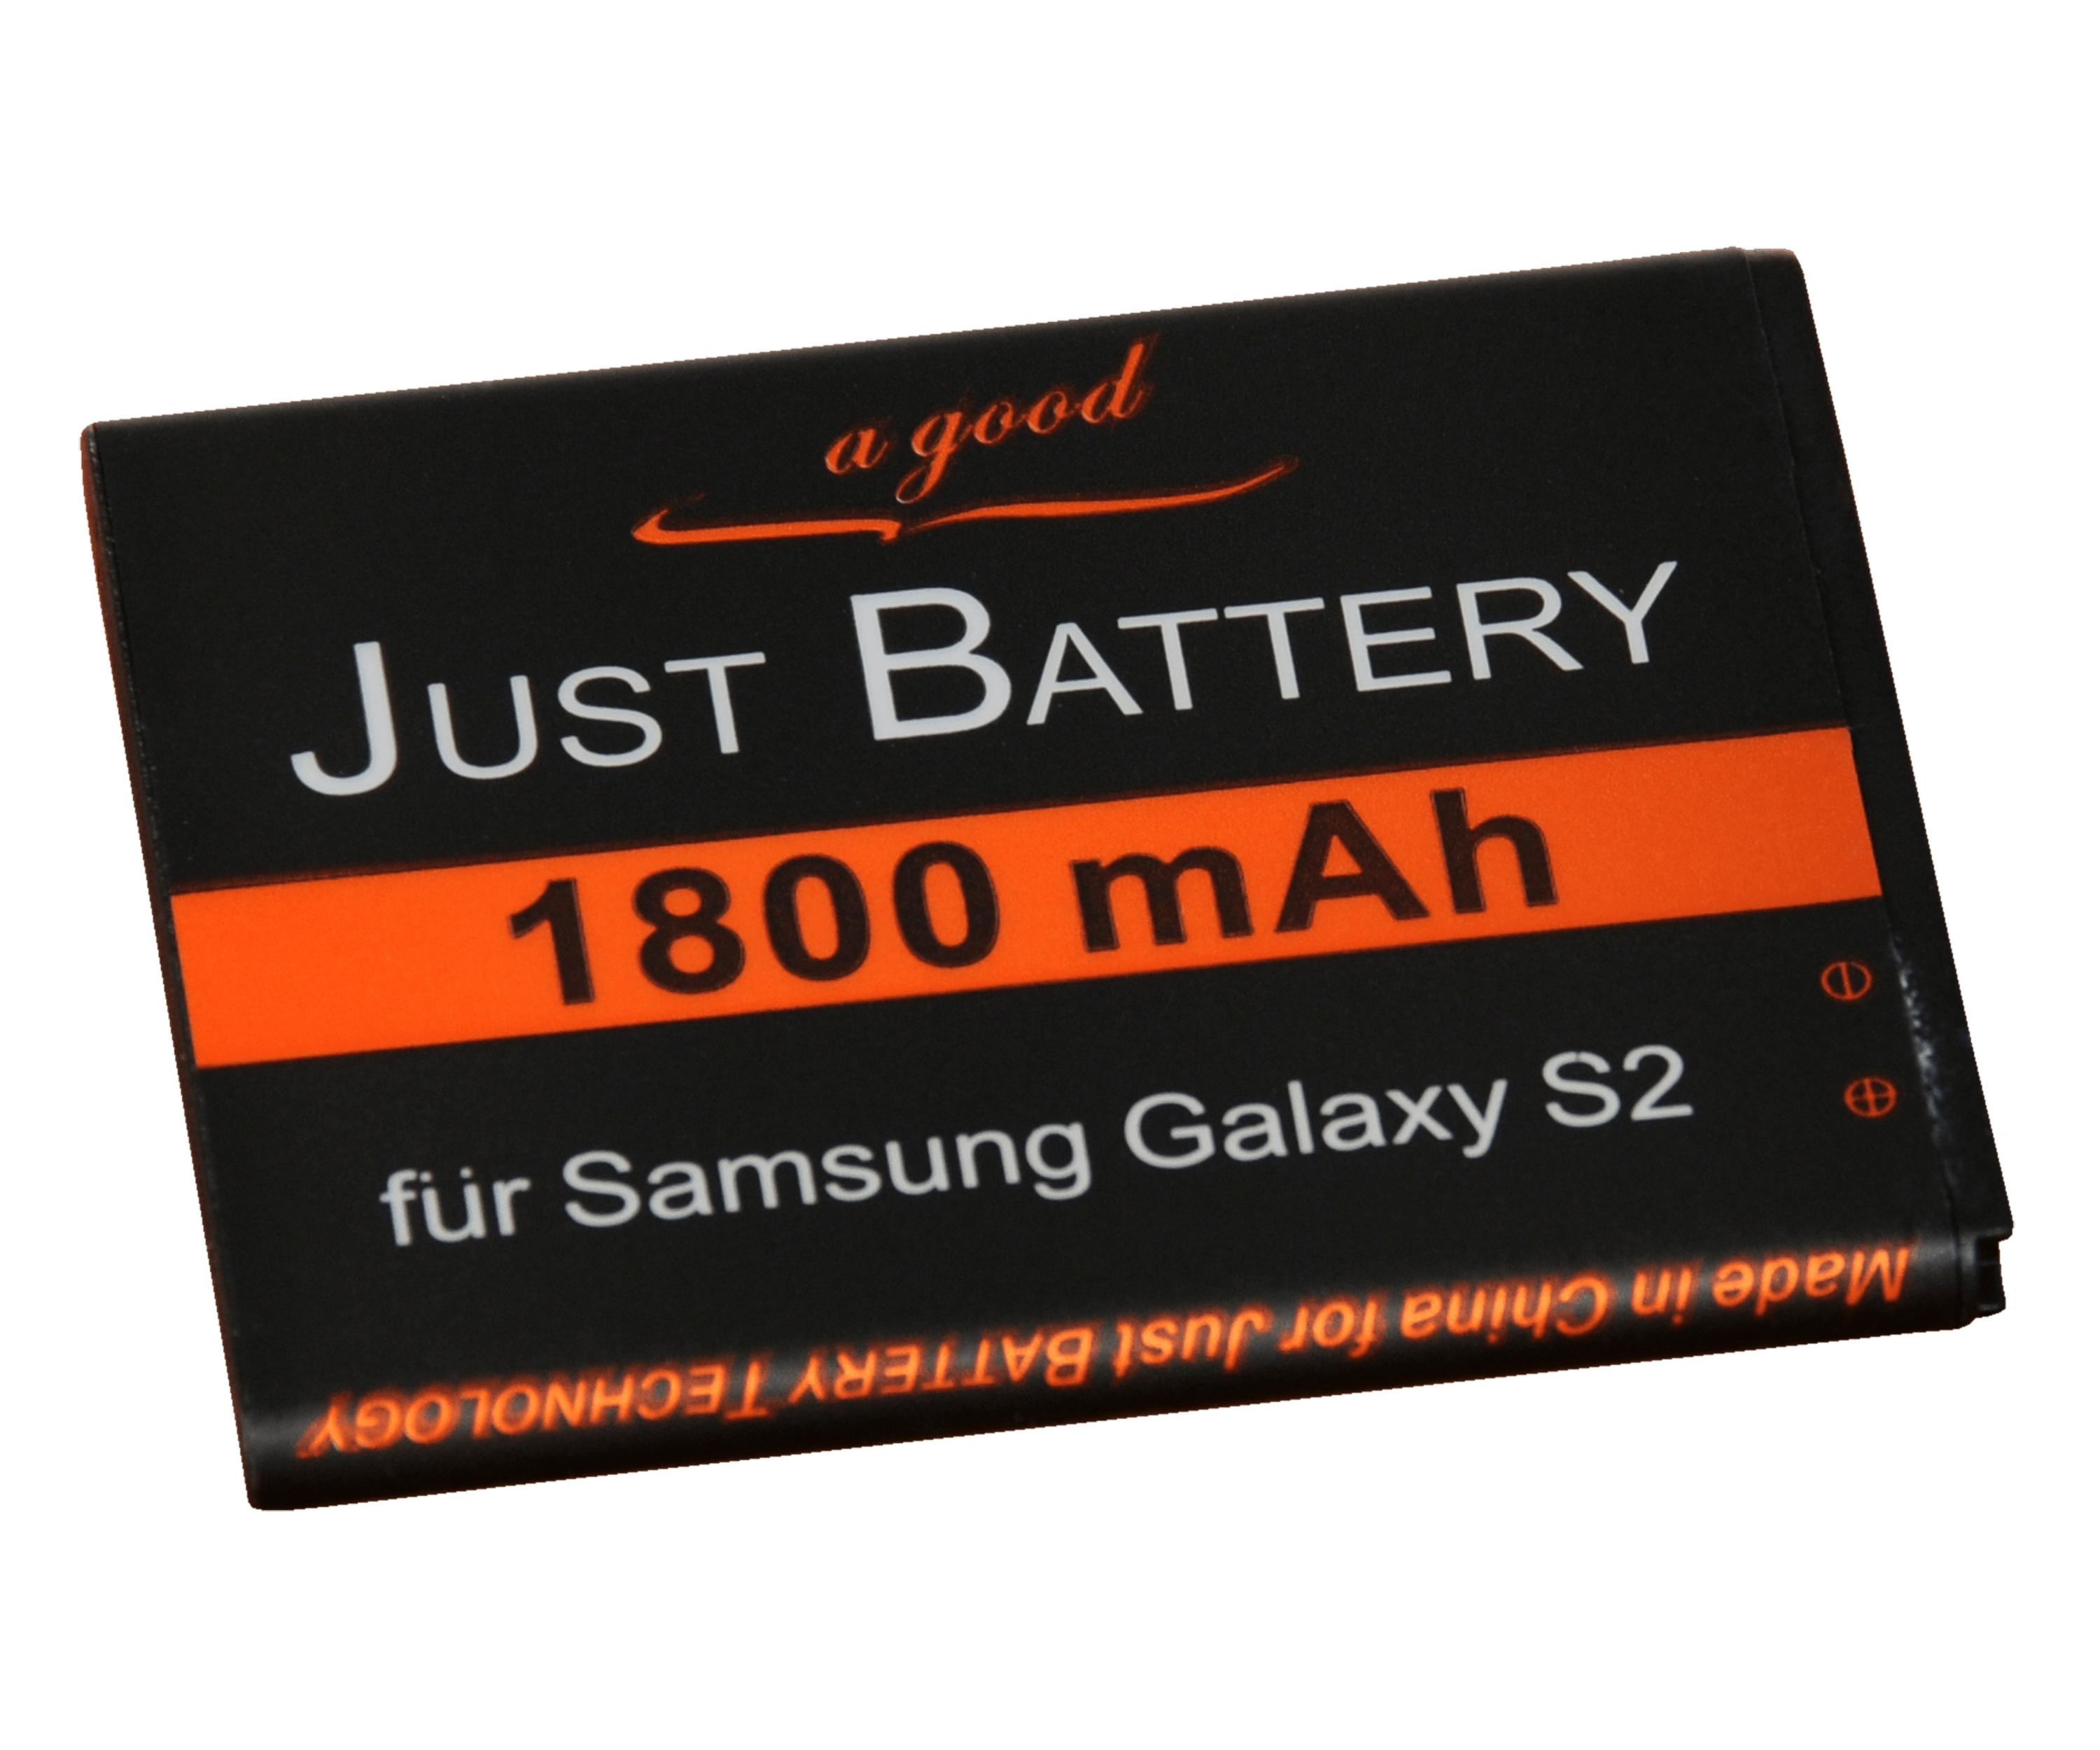 Battery for Samsung Galaxy R & Z GT-i9103